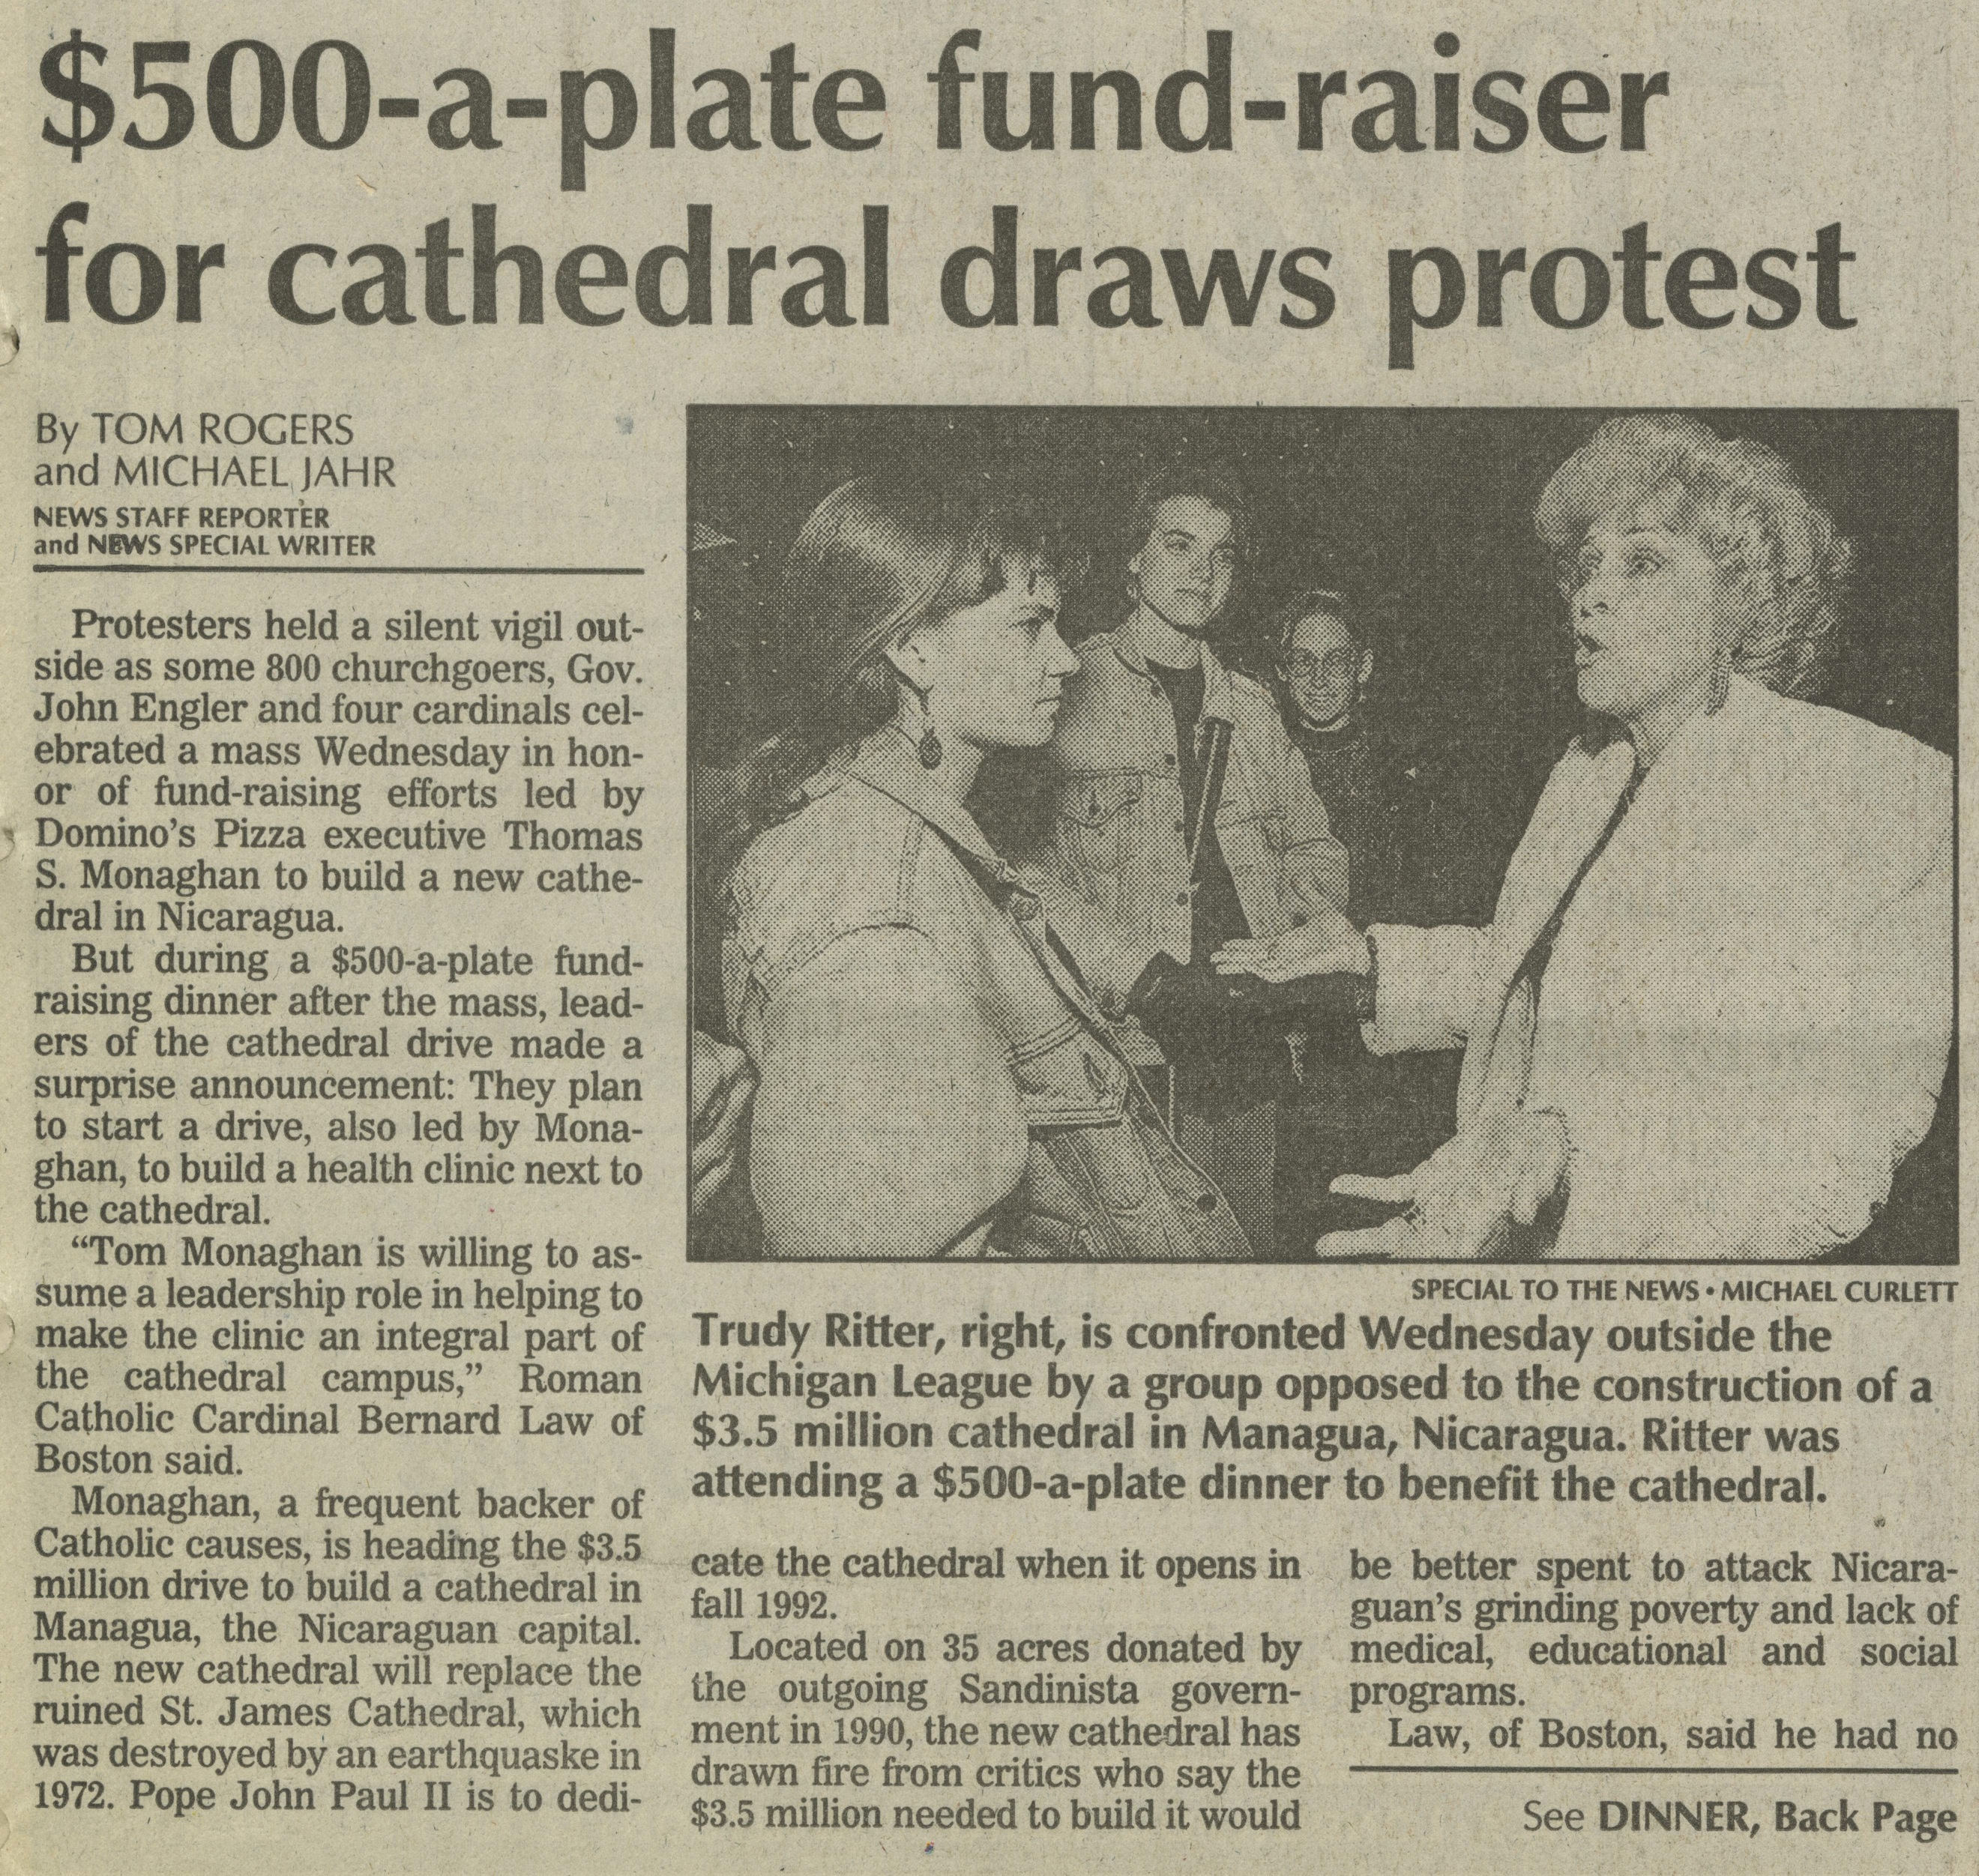 500-A-Plate Fund-raiser For Cathedral Draws Protest image